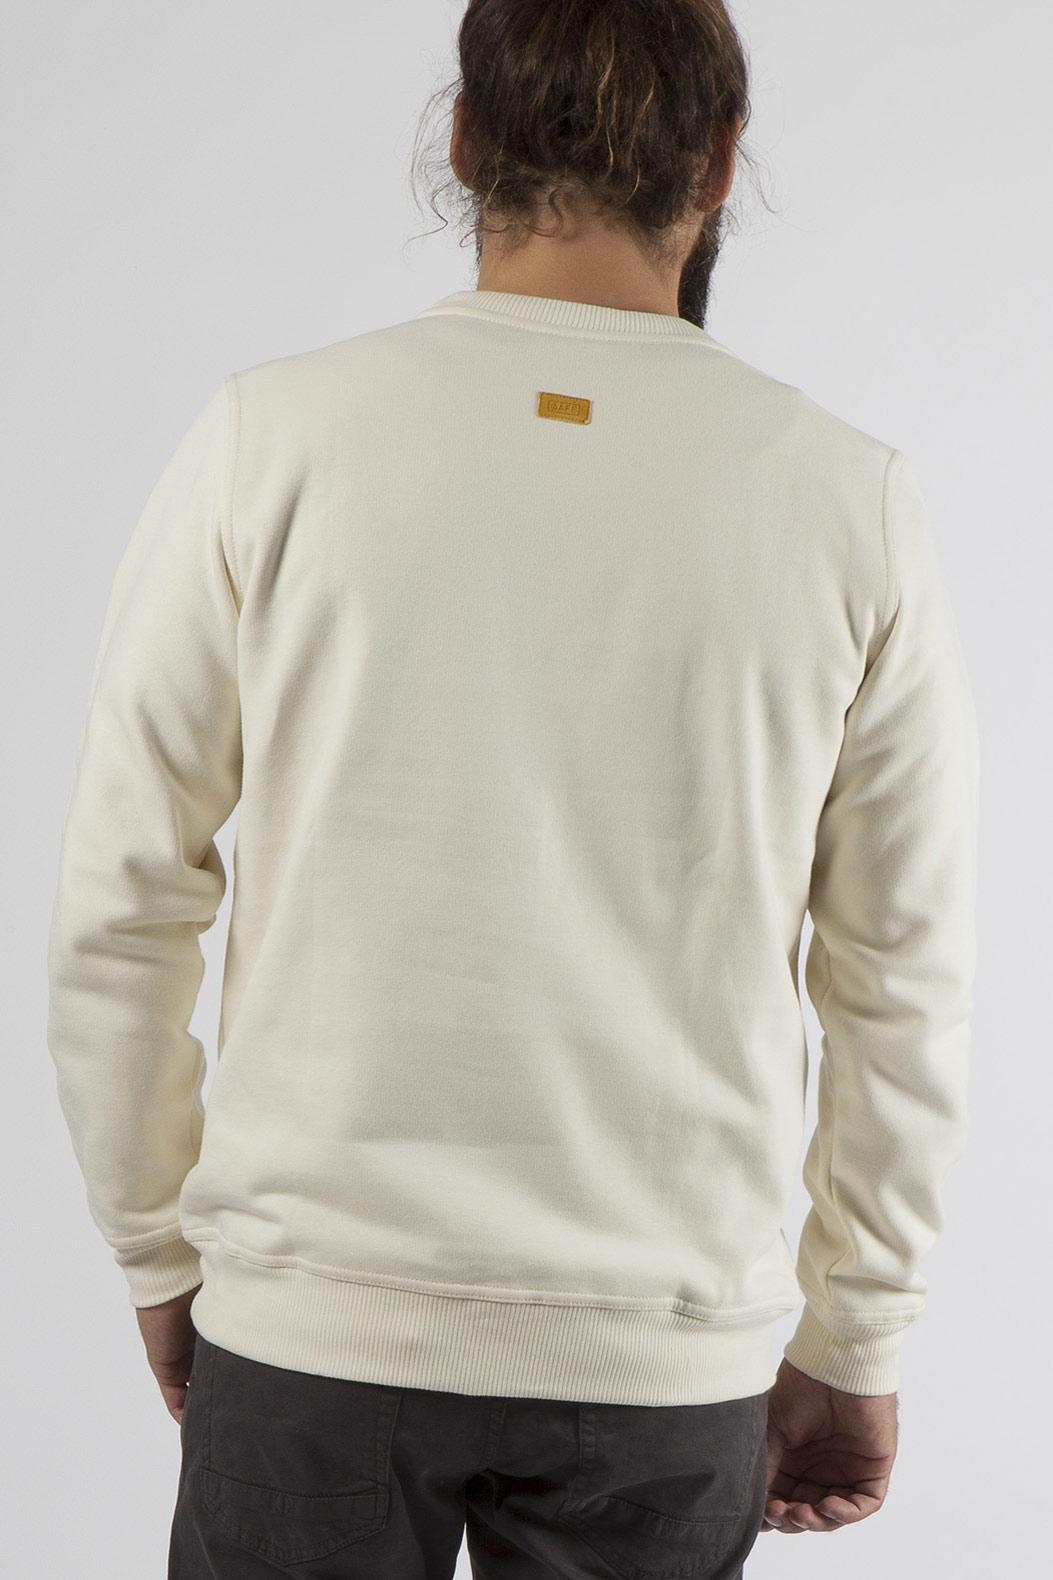 White sweatshirt made in Portugal with 100% organic cotton